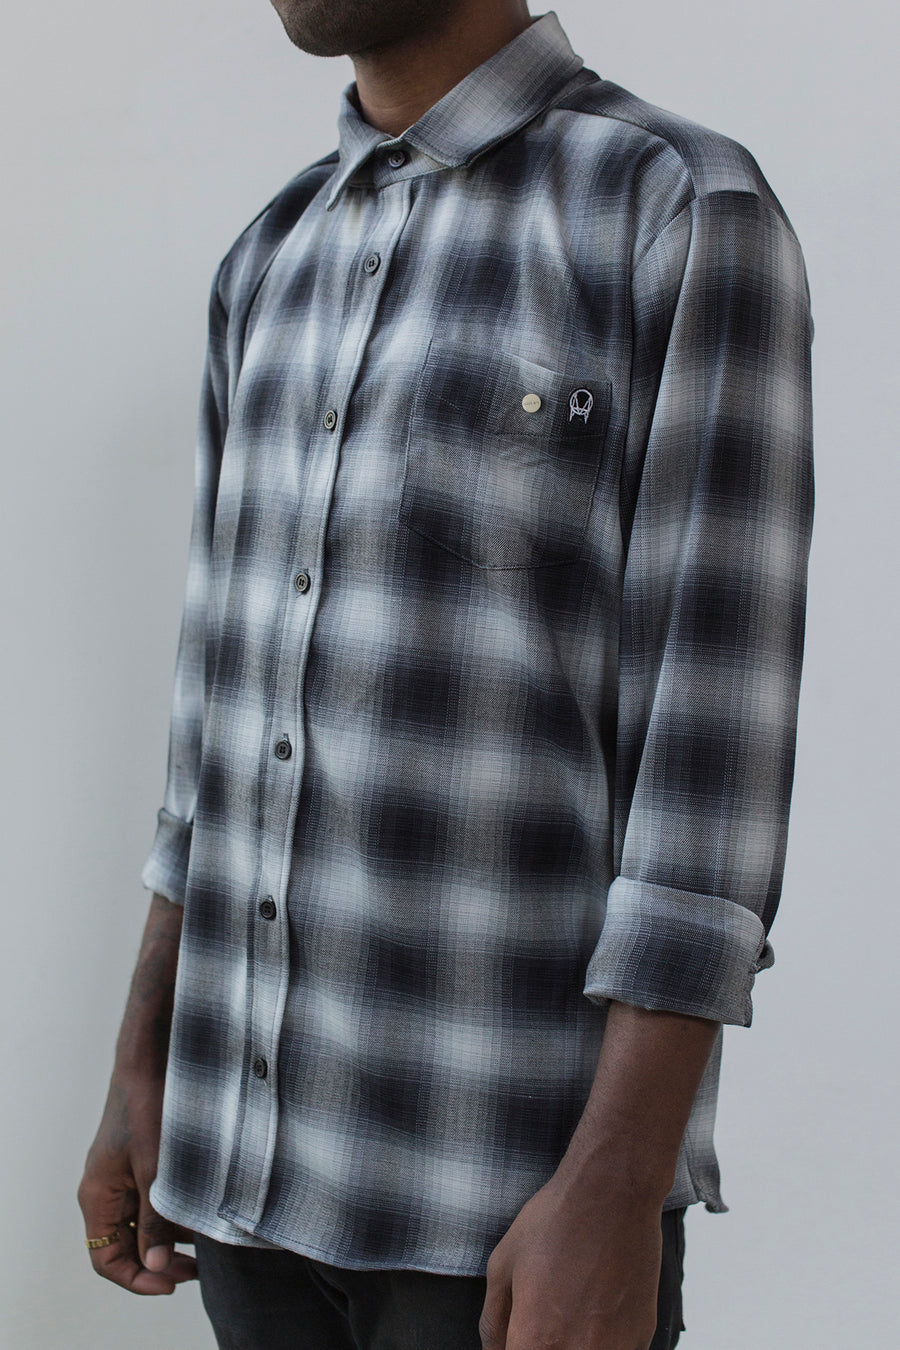 OWSLA x SOVRN FLANNEL | Button Up - SOVRN